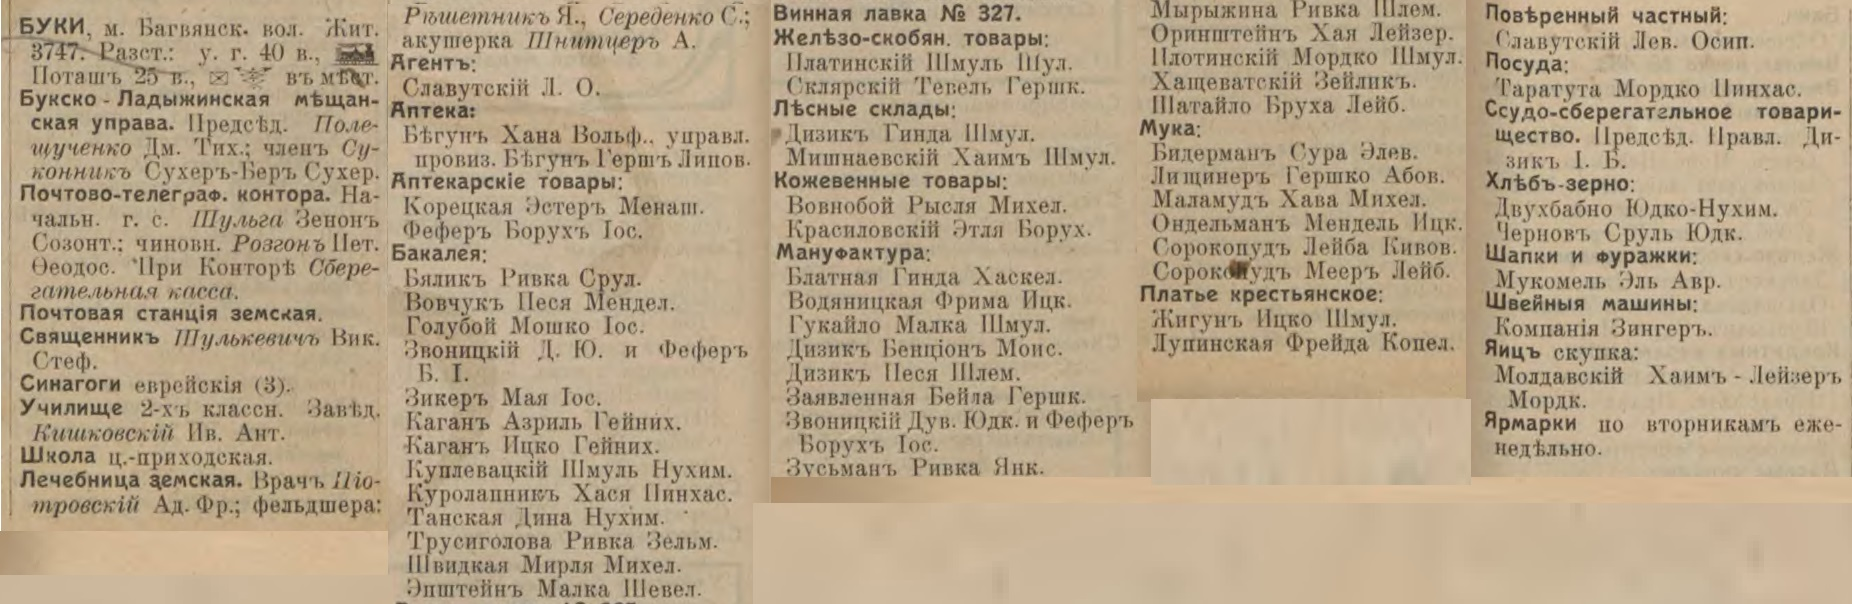 Buky entrepreneurs list from Russian Empire Business Directories by 1913